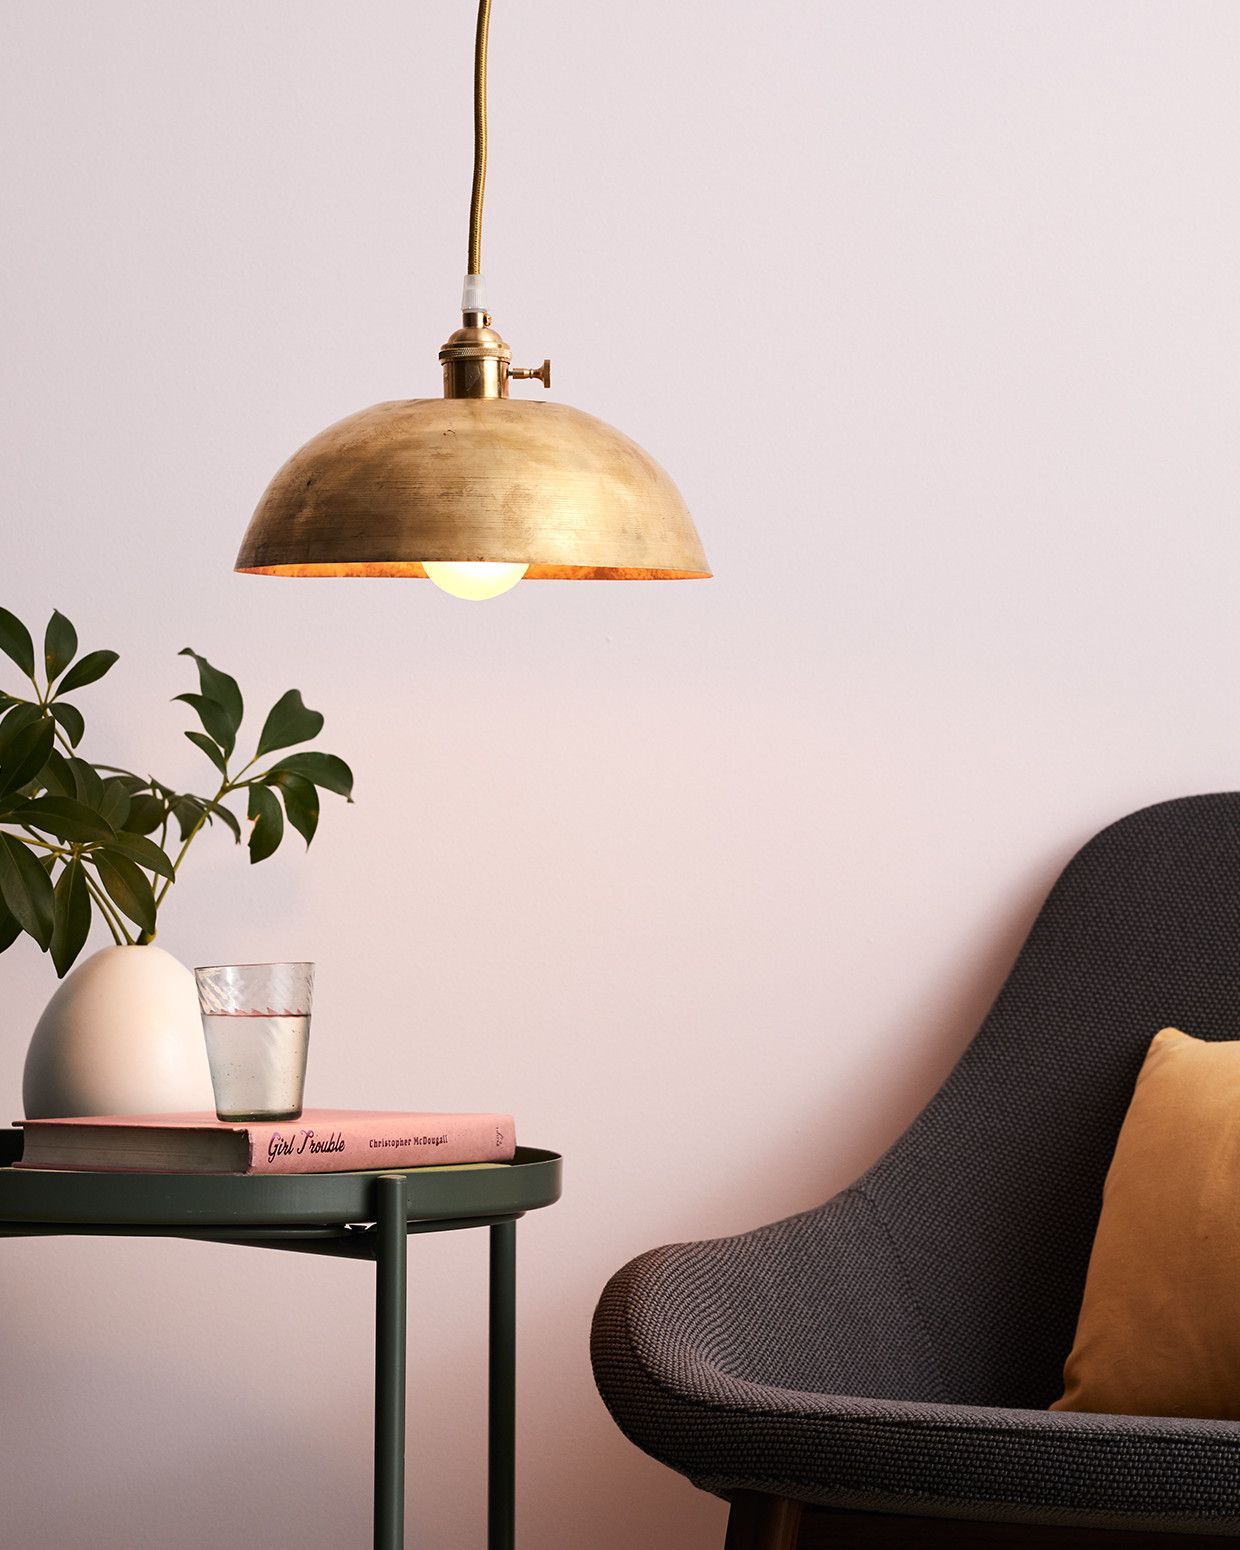 Brass Bowl Pendant Lamp Diy Pendant Lamp Diy Pendant Light Plug In Pendant Light